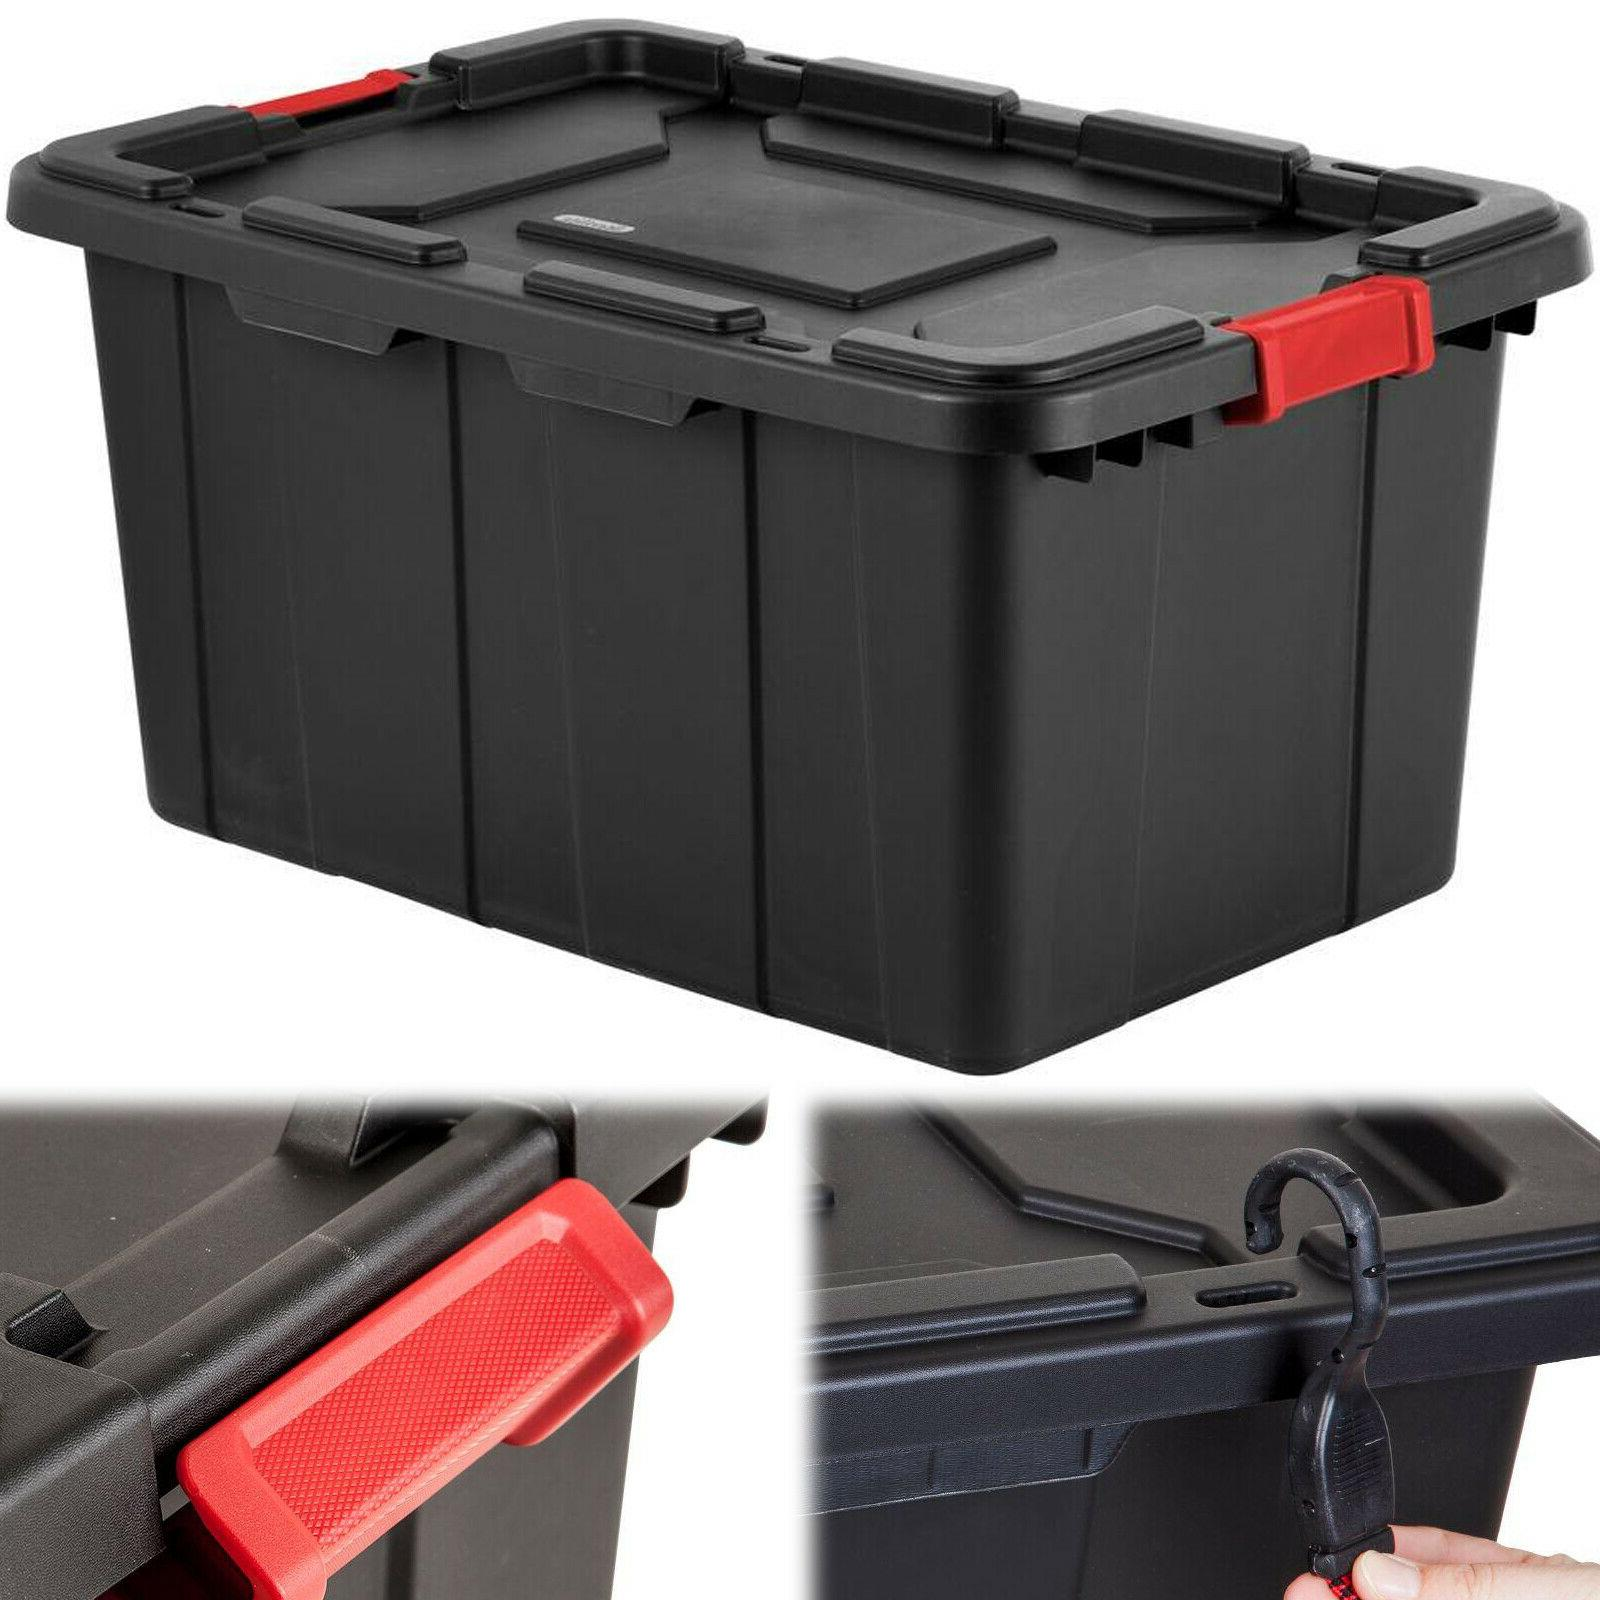 STORAGE TOTE BOX 27 Gal Plastic Container Latch Lid Organize